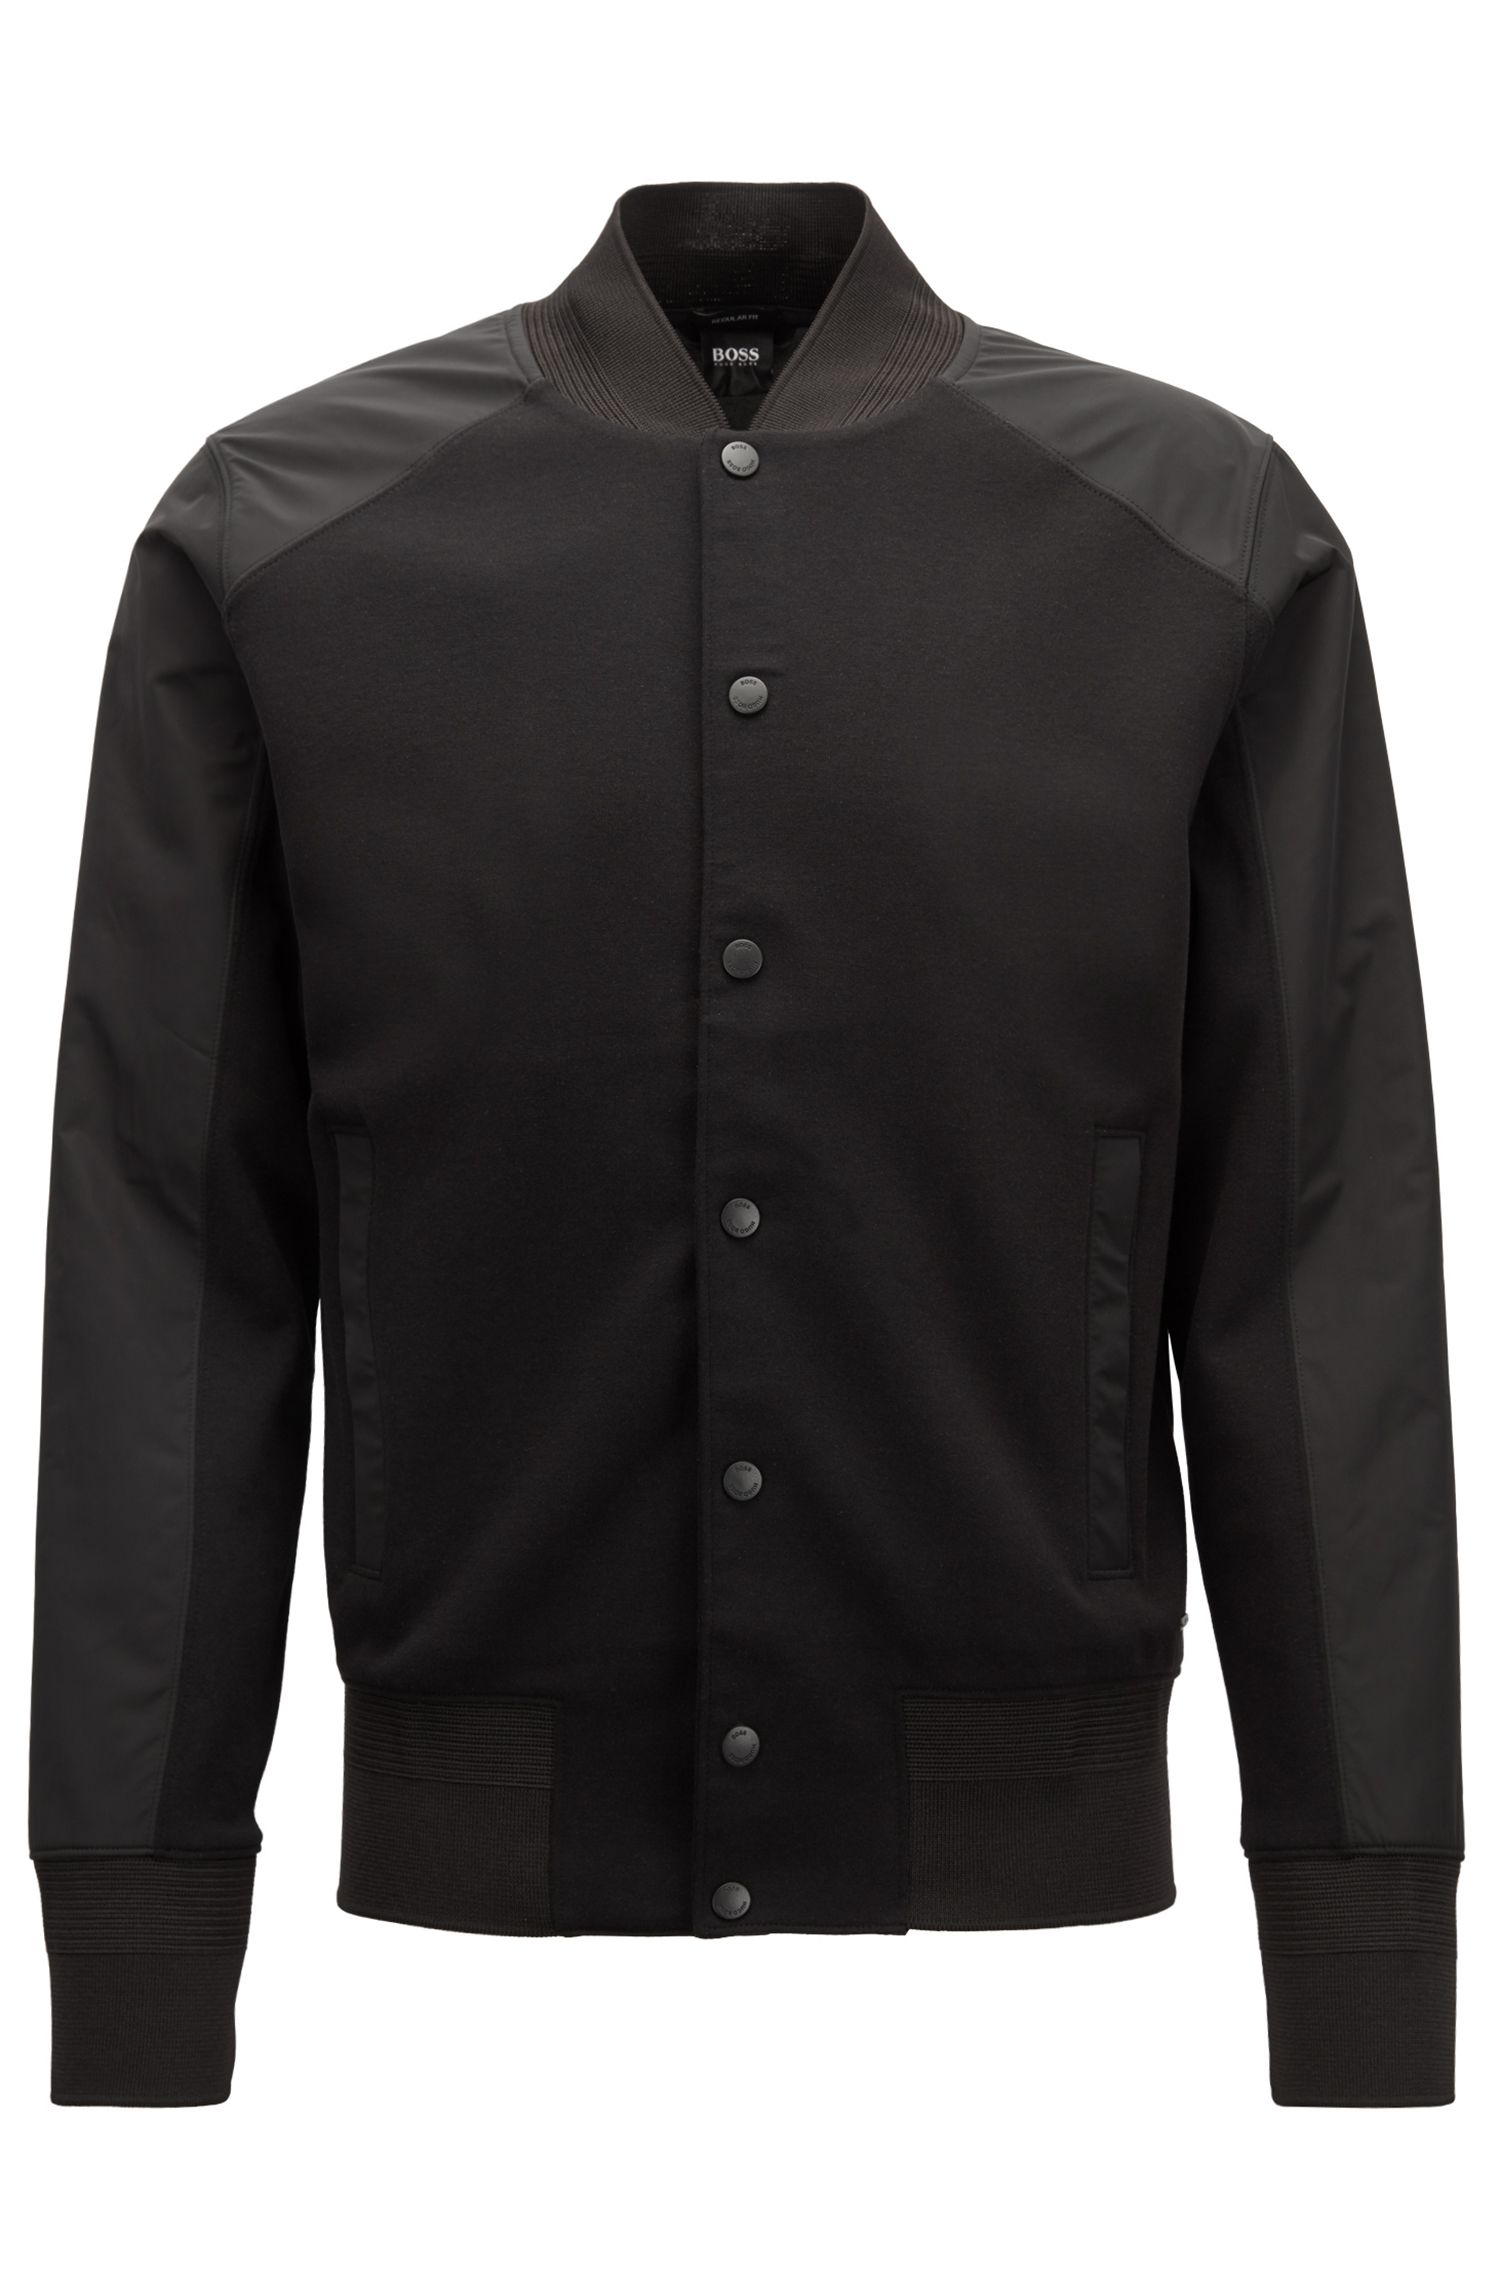 Varsity-style jacket with press-stud front closure, Black